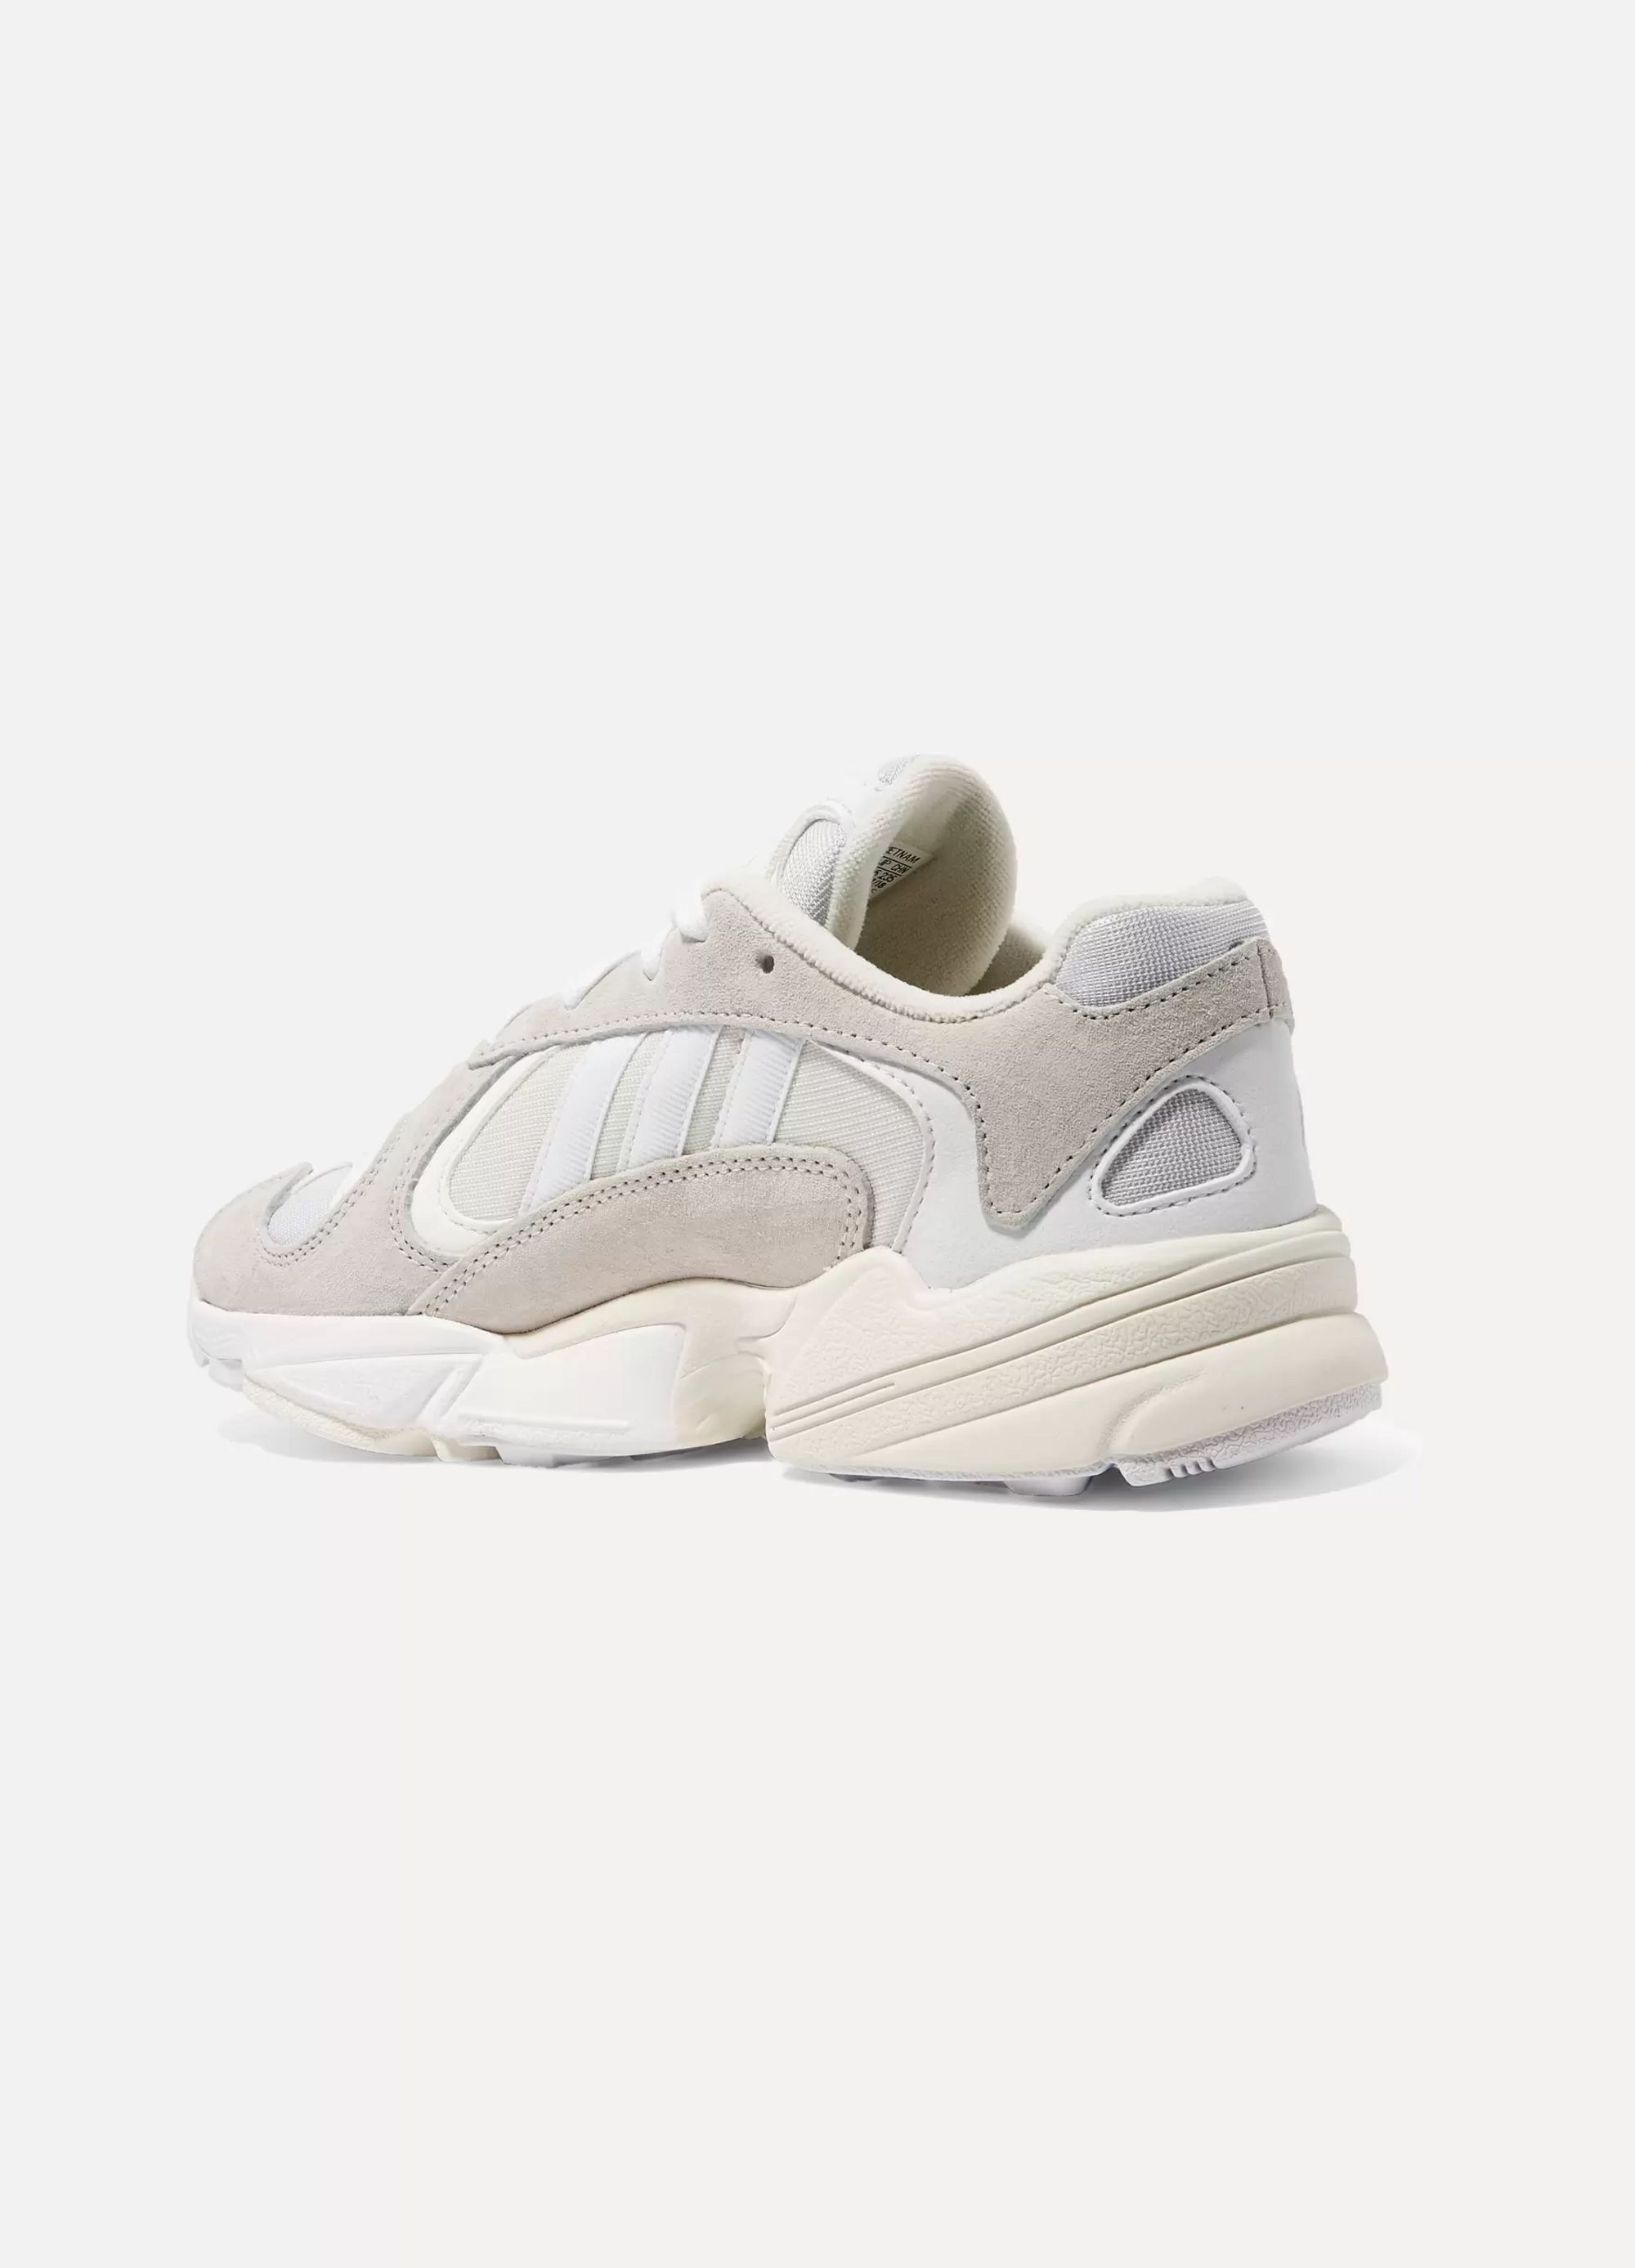 adidas Originals Yung-1 leather, suede and mesh sneakers